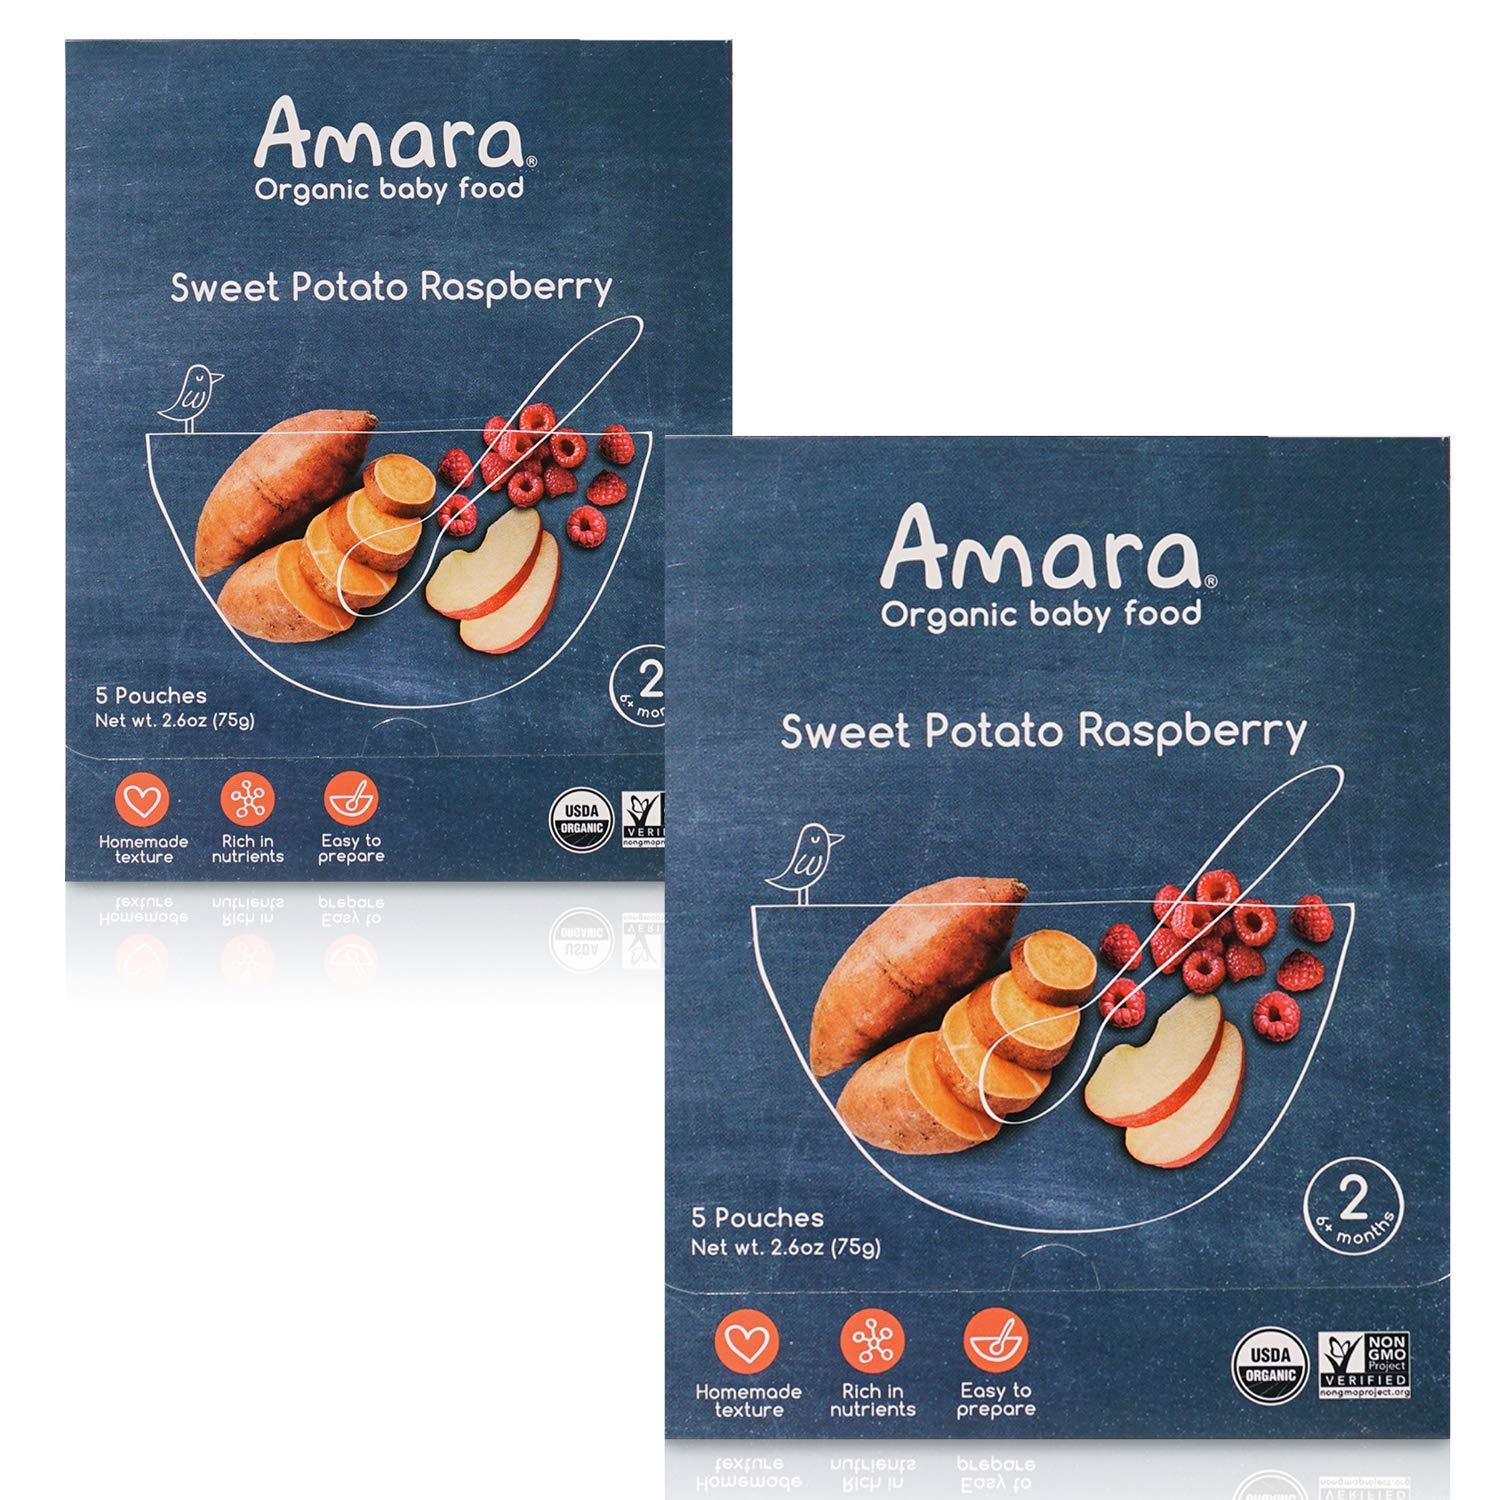 Amara Organic Baby Food | Sweet Potato Raspberry | Homemade Made Possible | Mix with Breastmilk or Water | Certified Organic, Non-GMO, No Added Sugars| Stage 2 | 10 Pouches